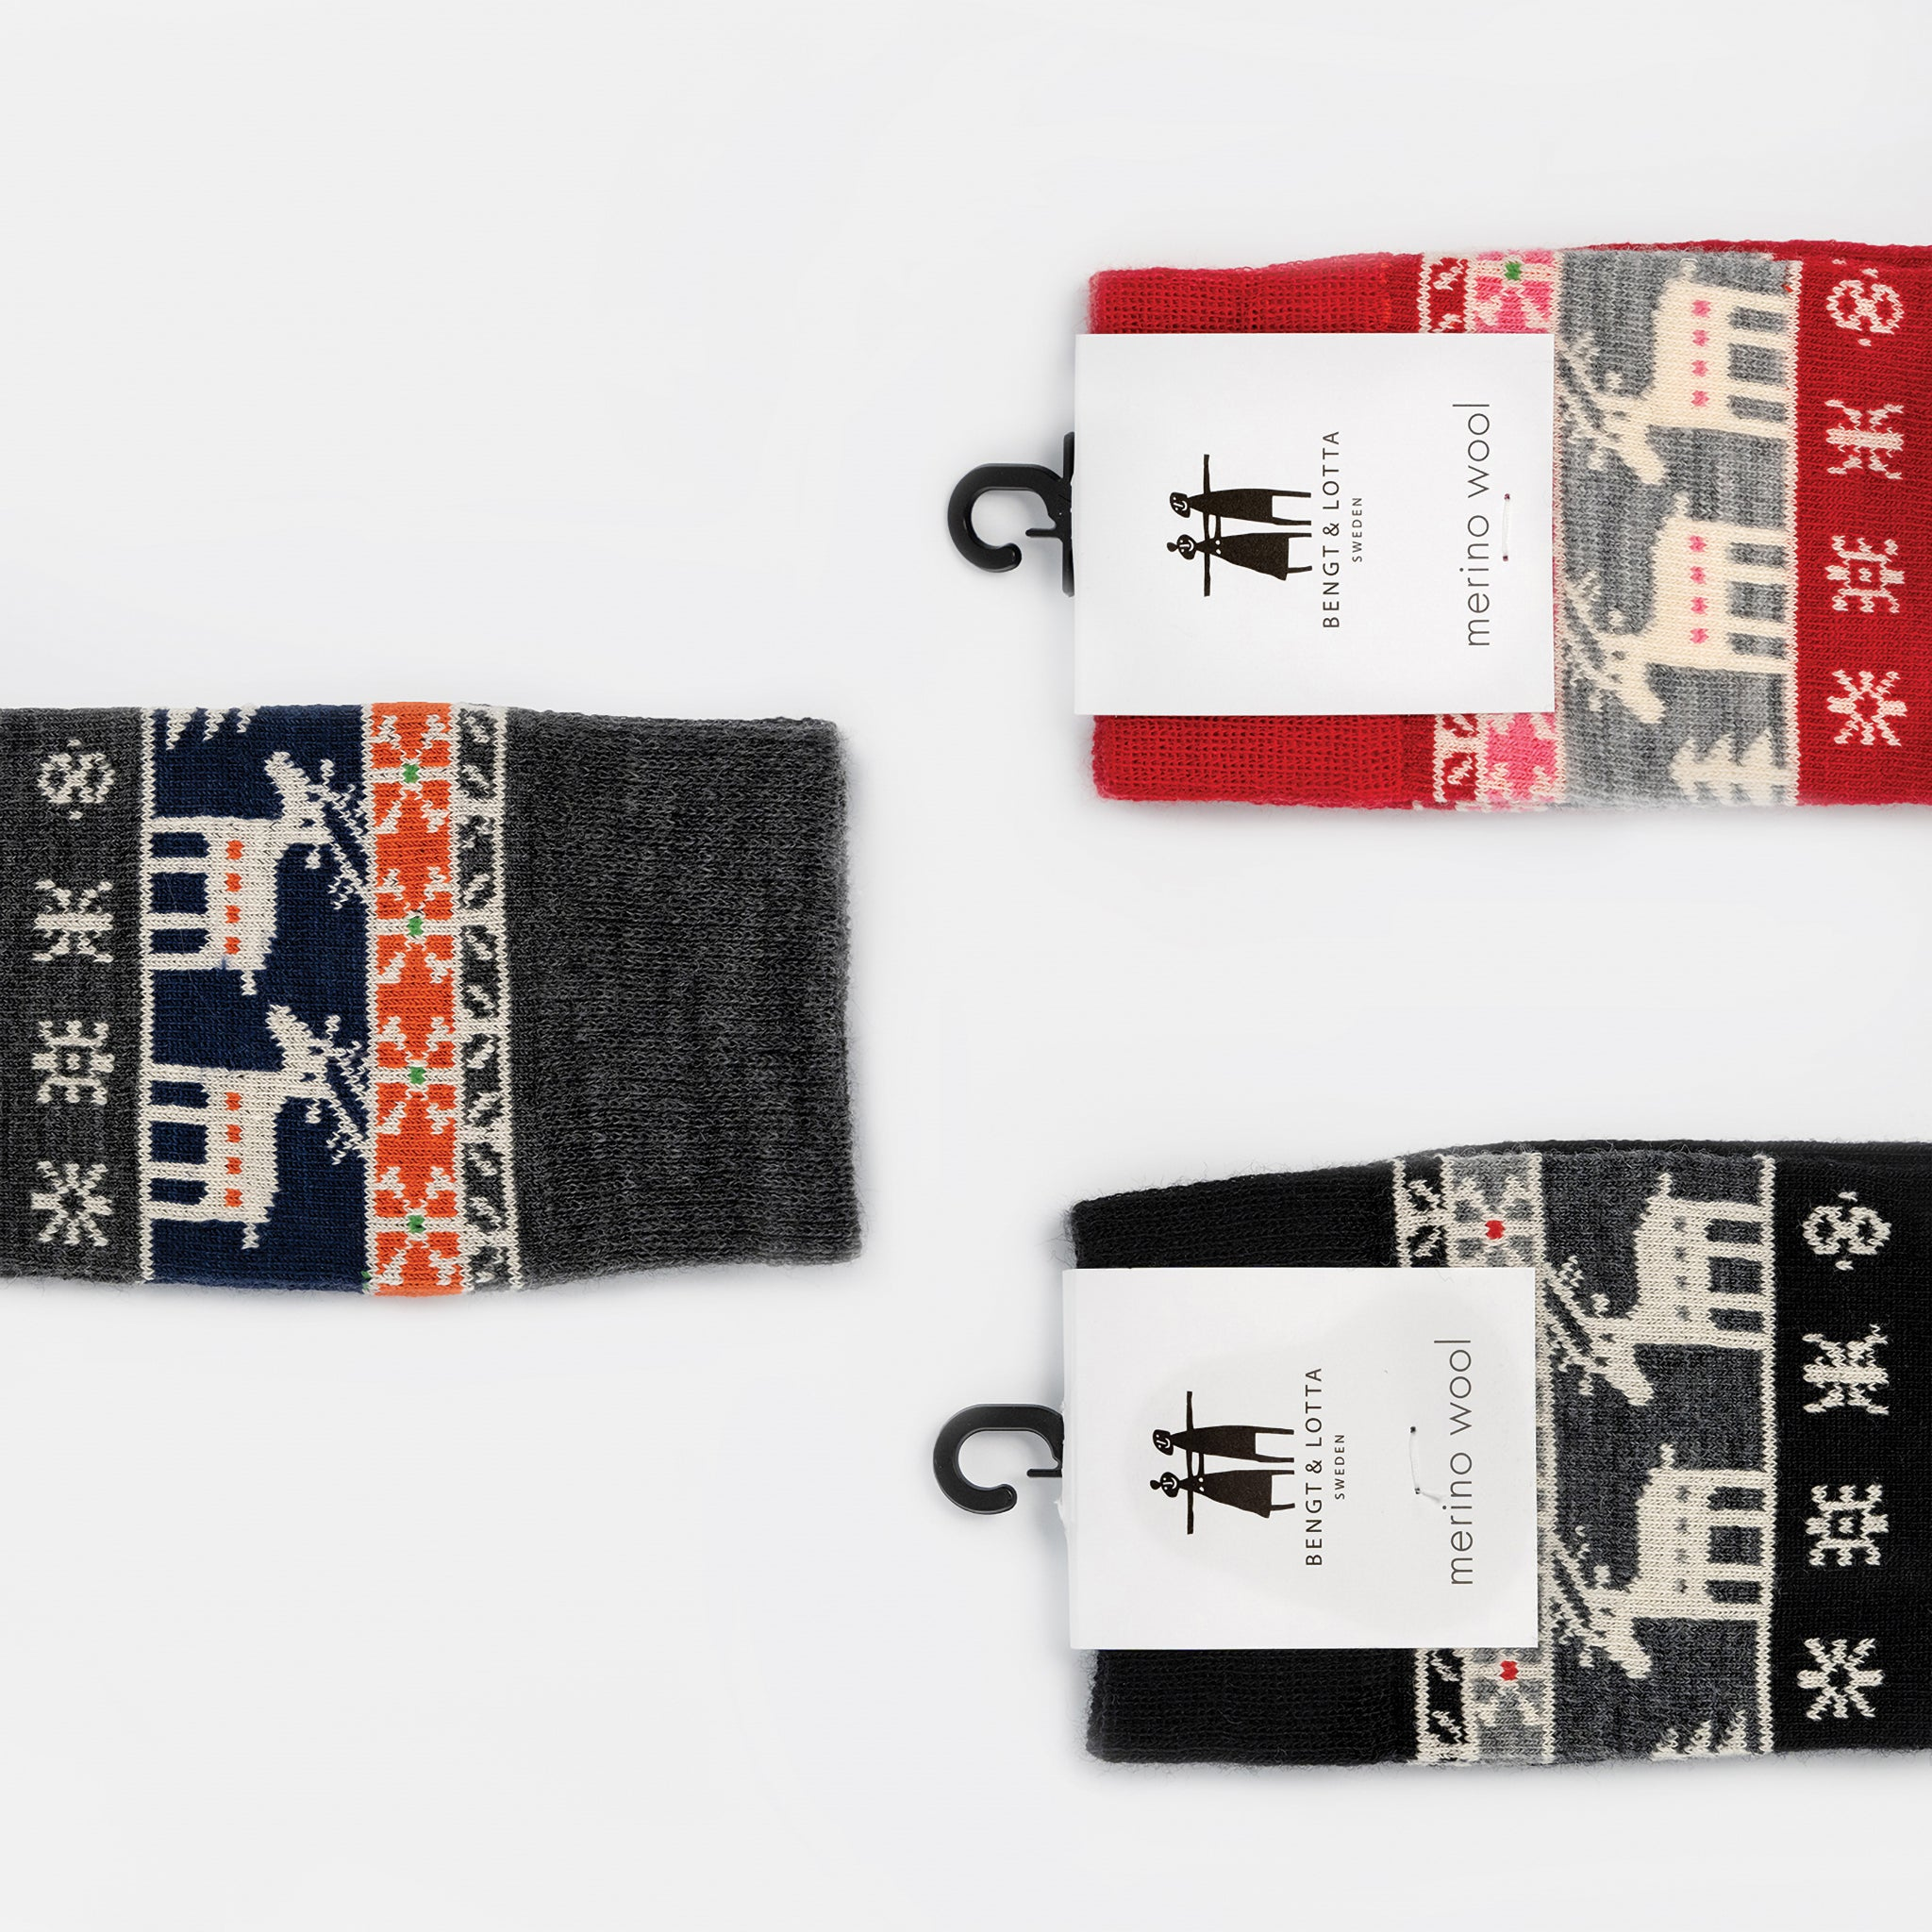 Reindeer Socks from Bengt & Lotta